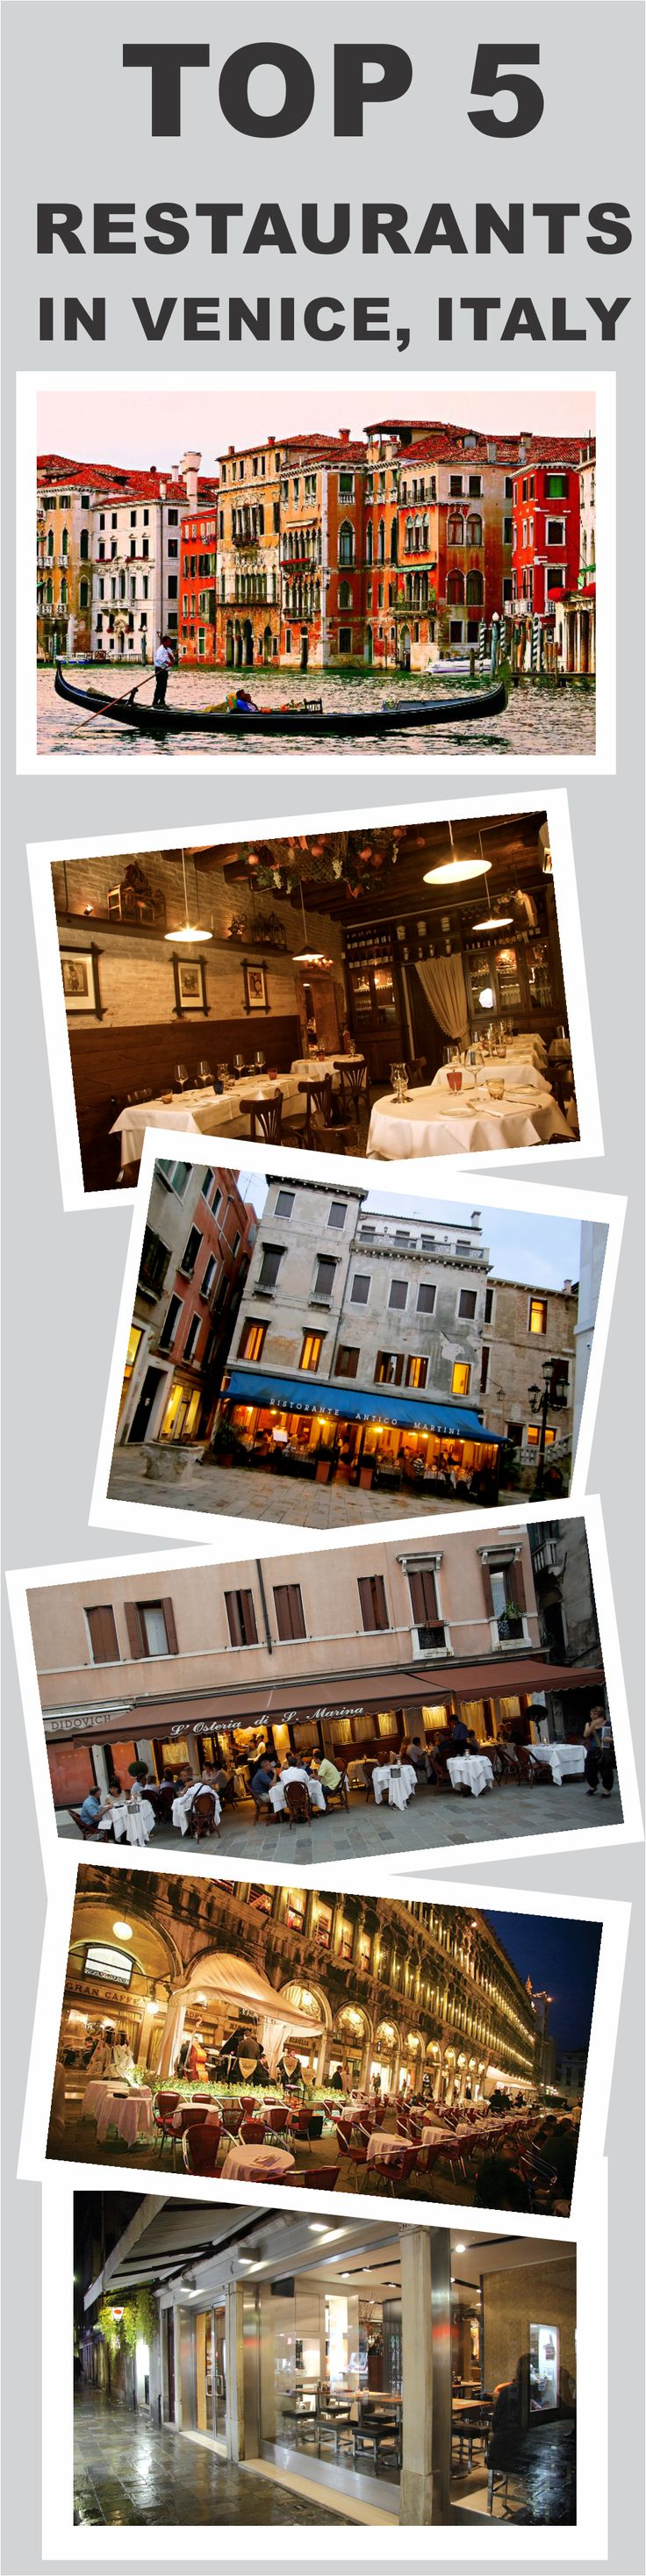 Top 5 Restaurants in Venice, Italy #Venice #Italy #Top5 #Restaurant